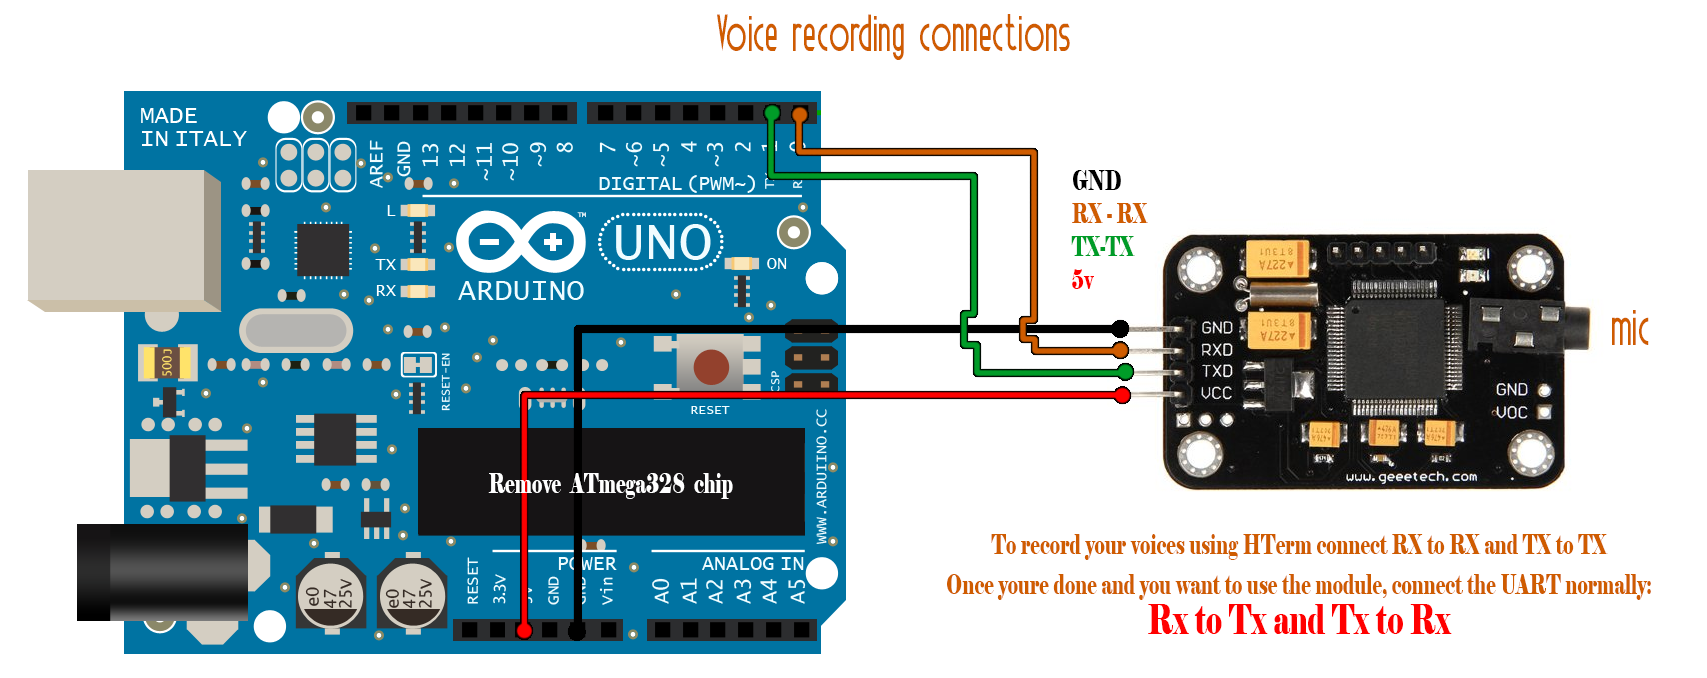 geeetech voice recognition module commands